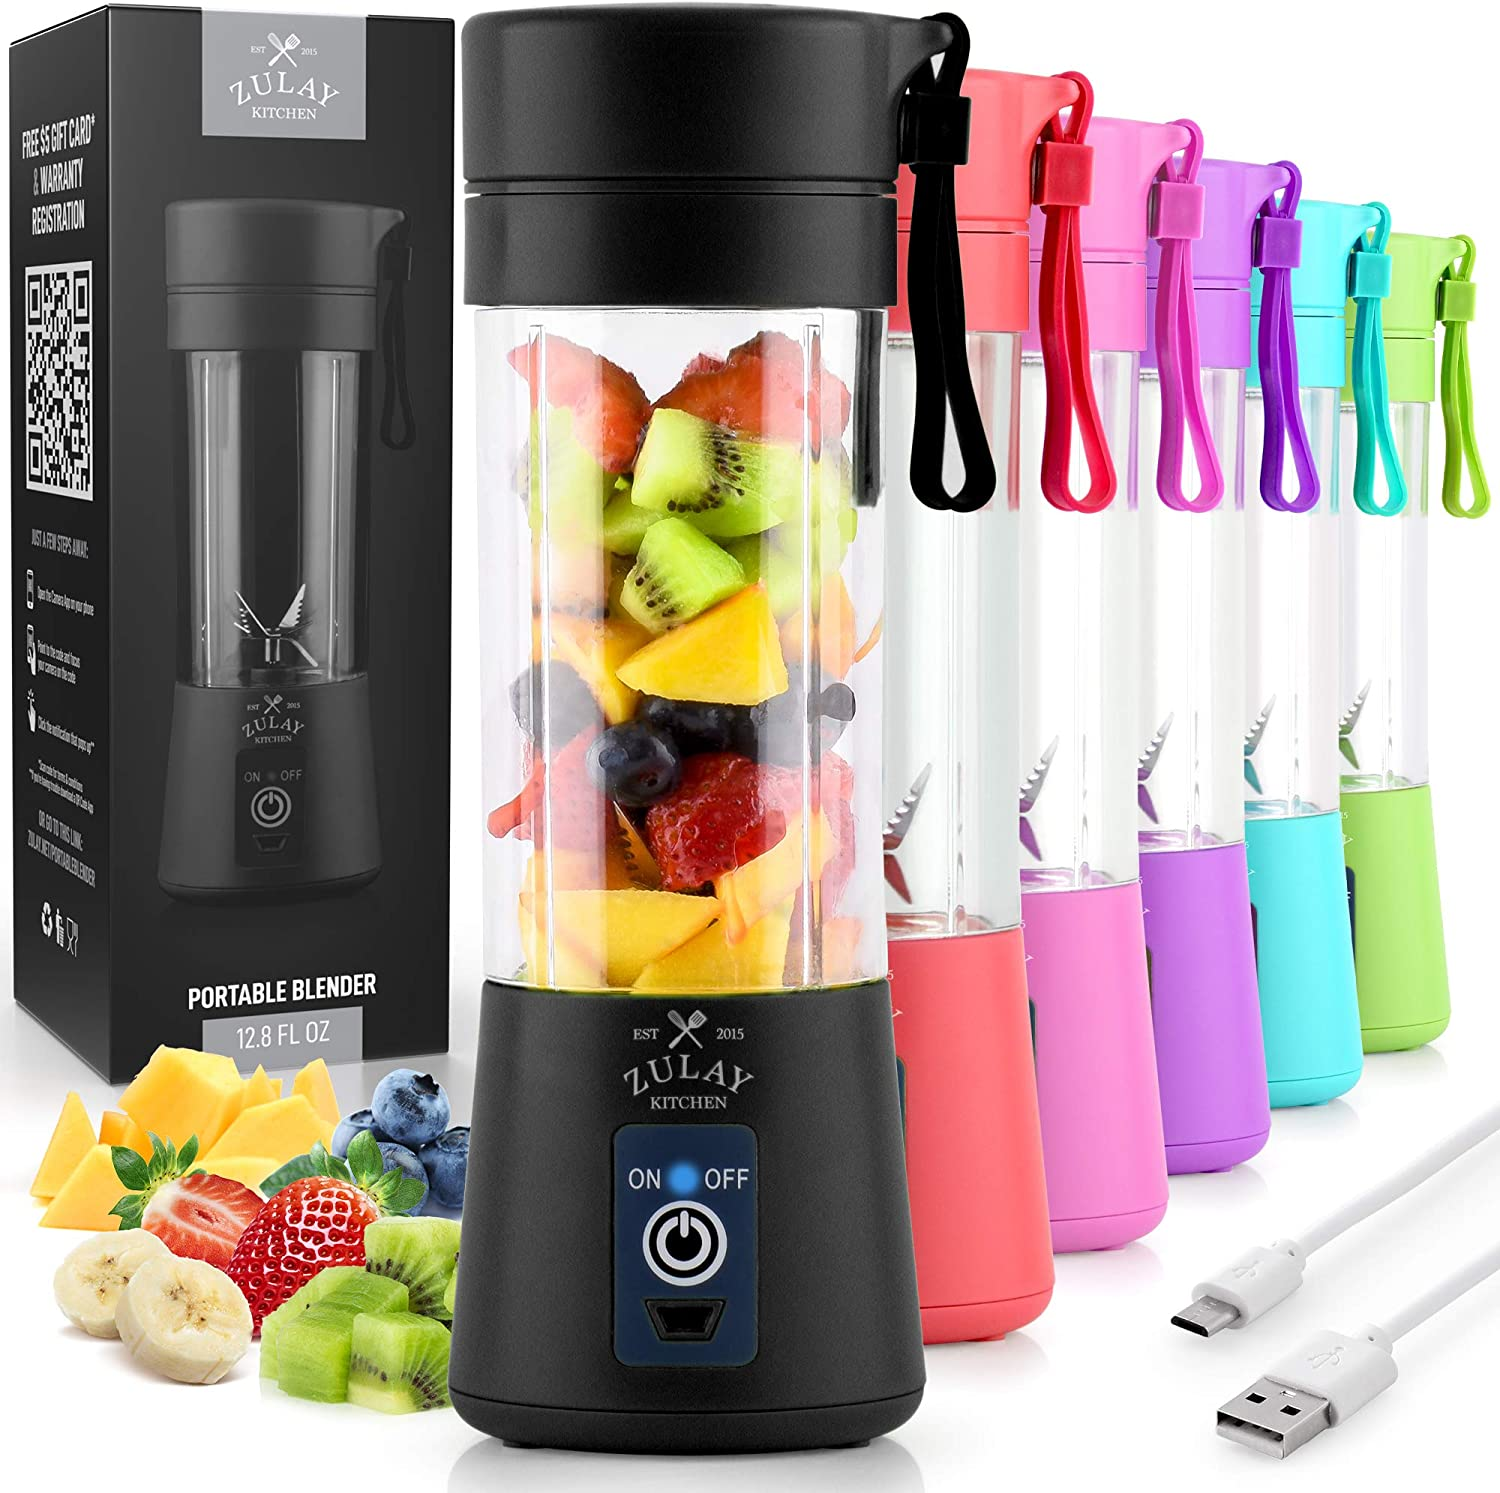 13oz Capacity Personal Mini Blender Portable Zulay Portable Blender For Shakes And Smoothies USB Rechargeable Portable Smoothie Blender Small For Travel Black